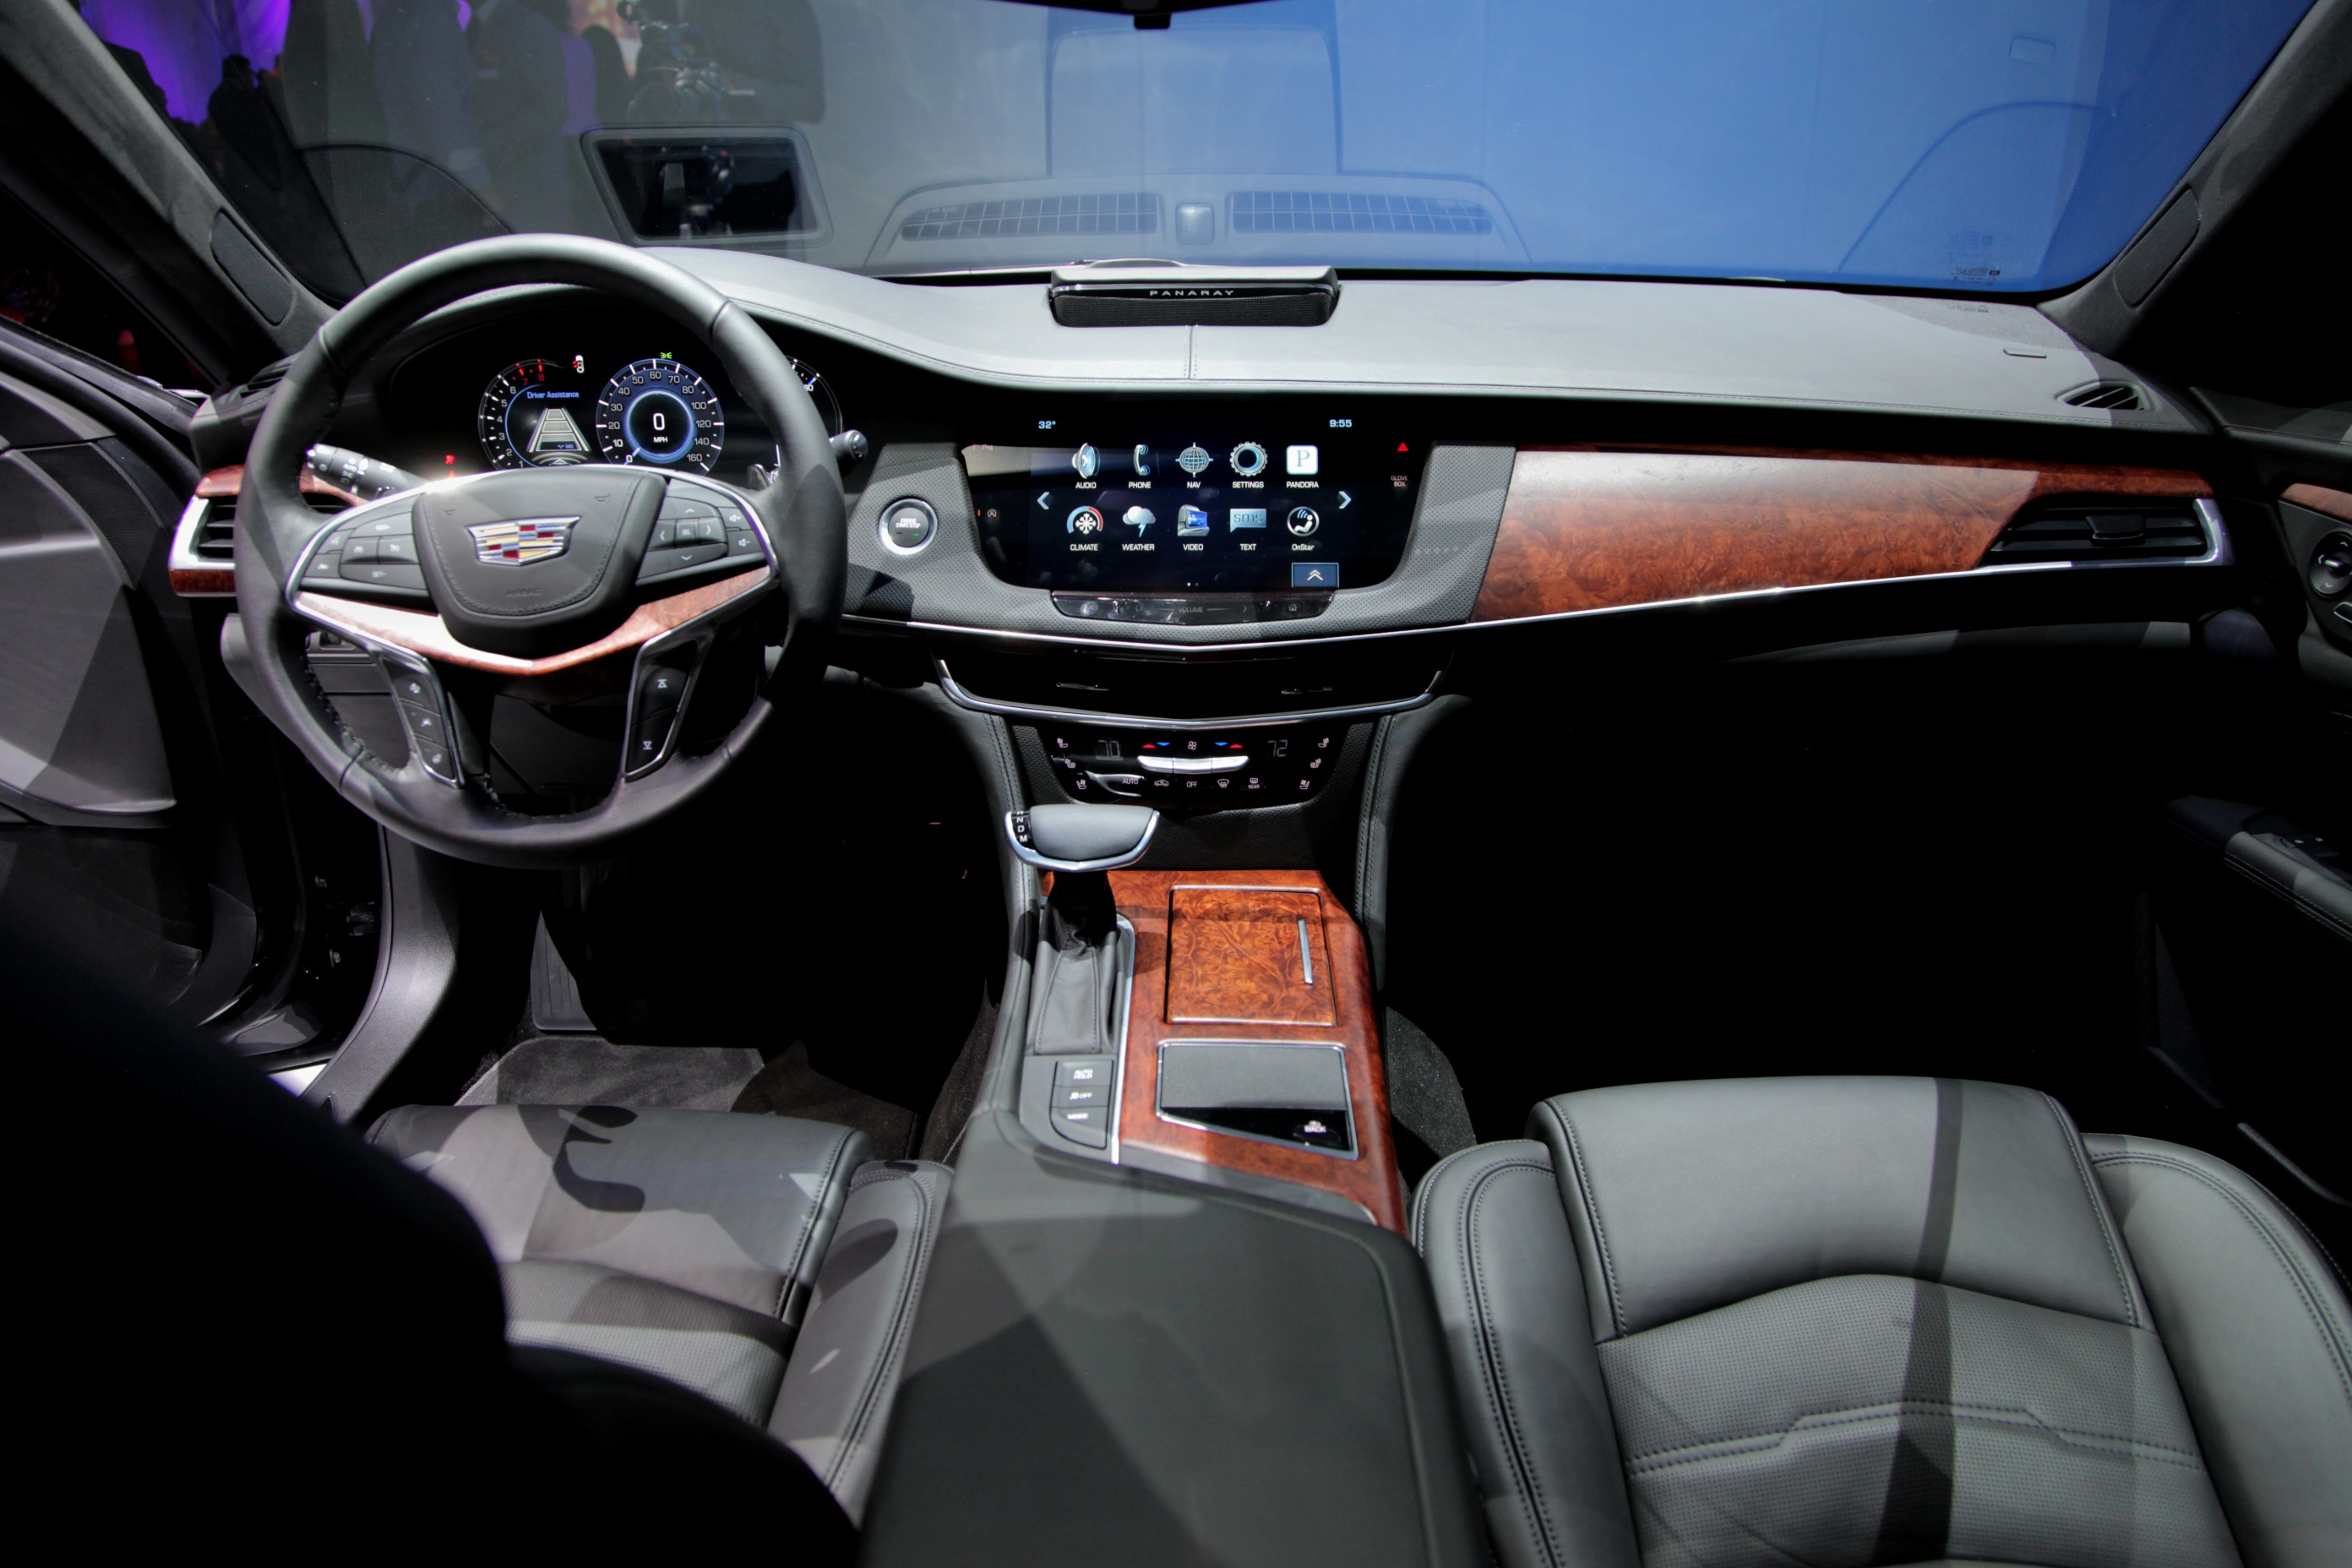 2016 Cadillac Ct6 Interior 06